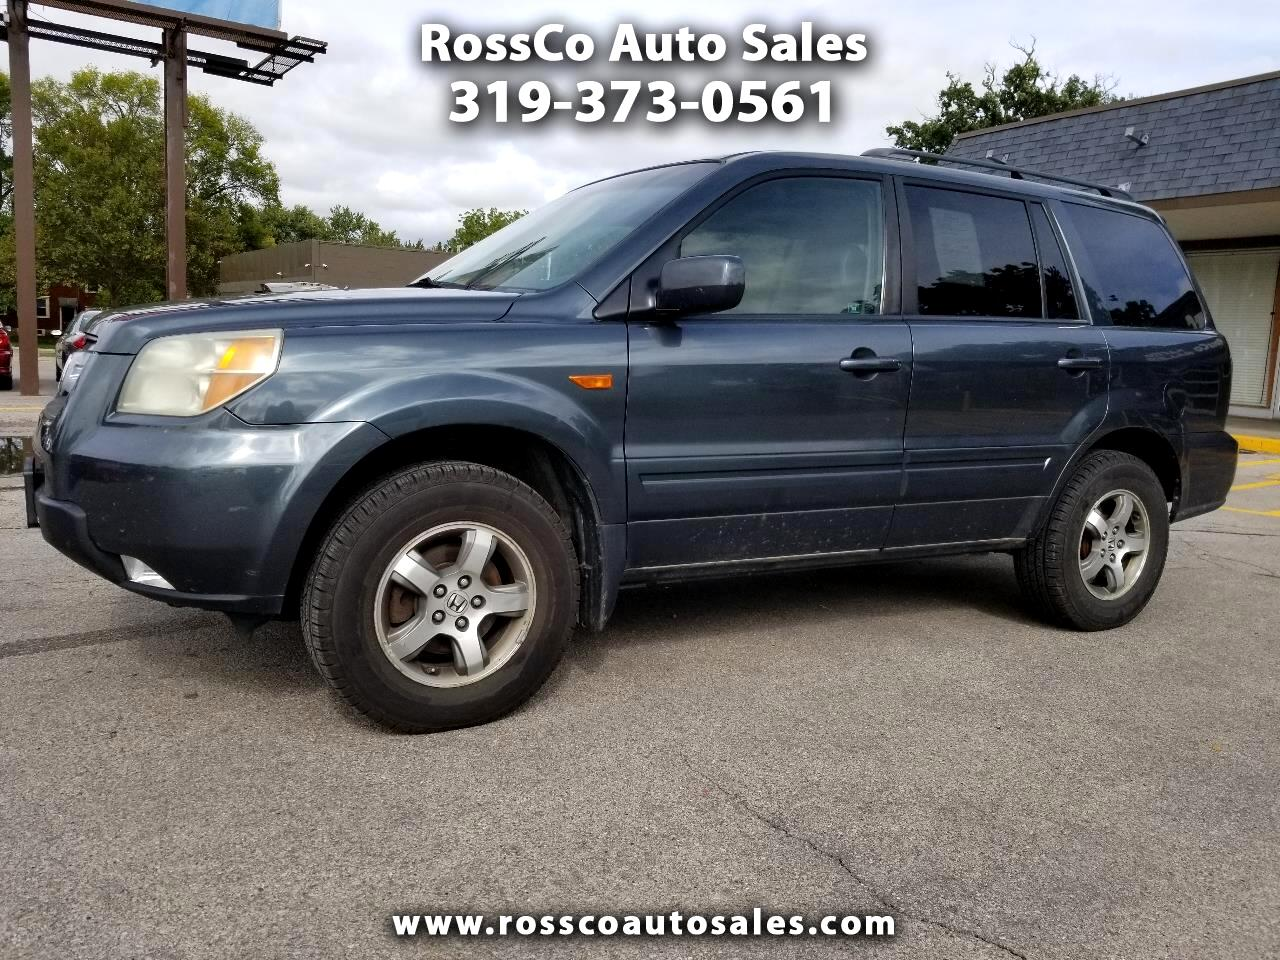 2006 Honda Pilot EXL 4WD w/ Leather and DVD